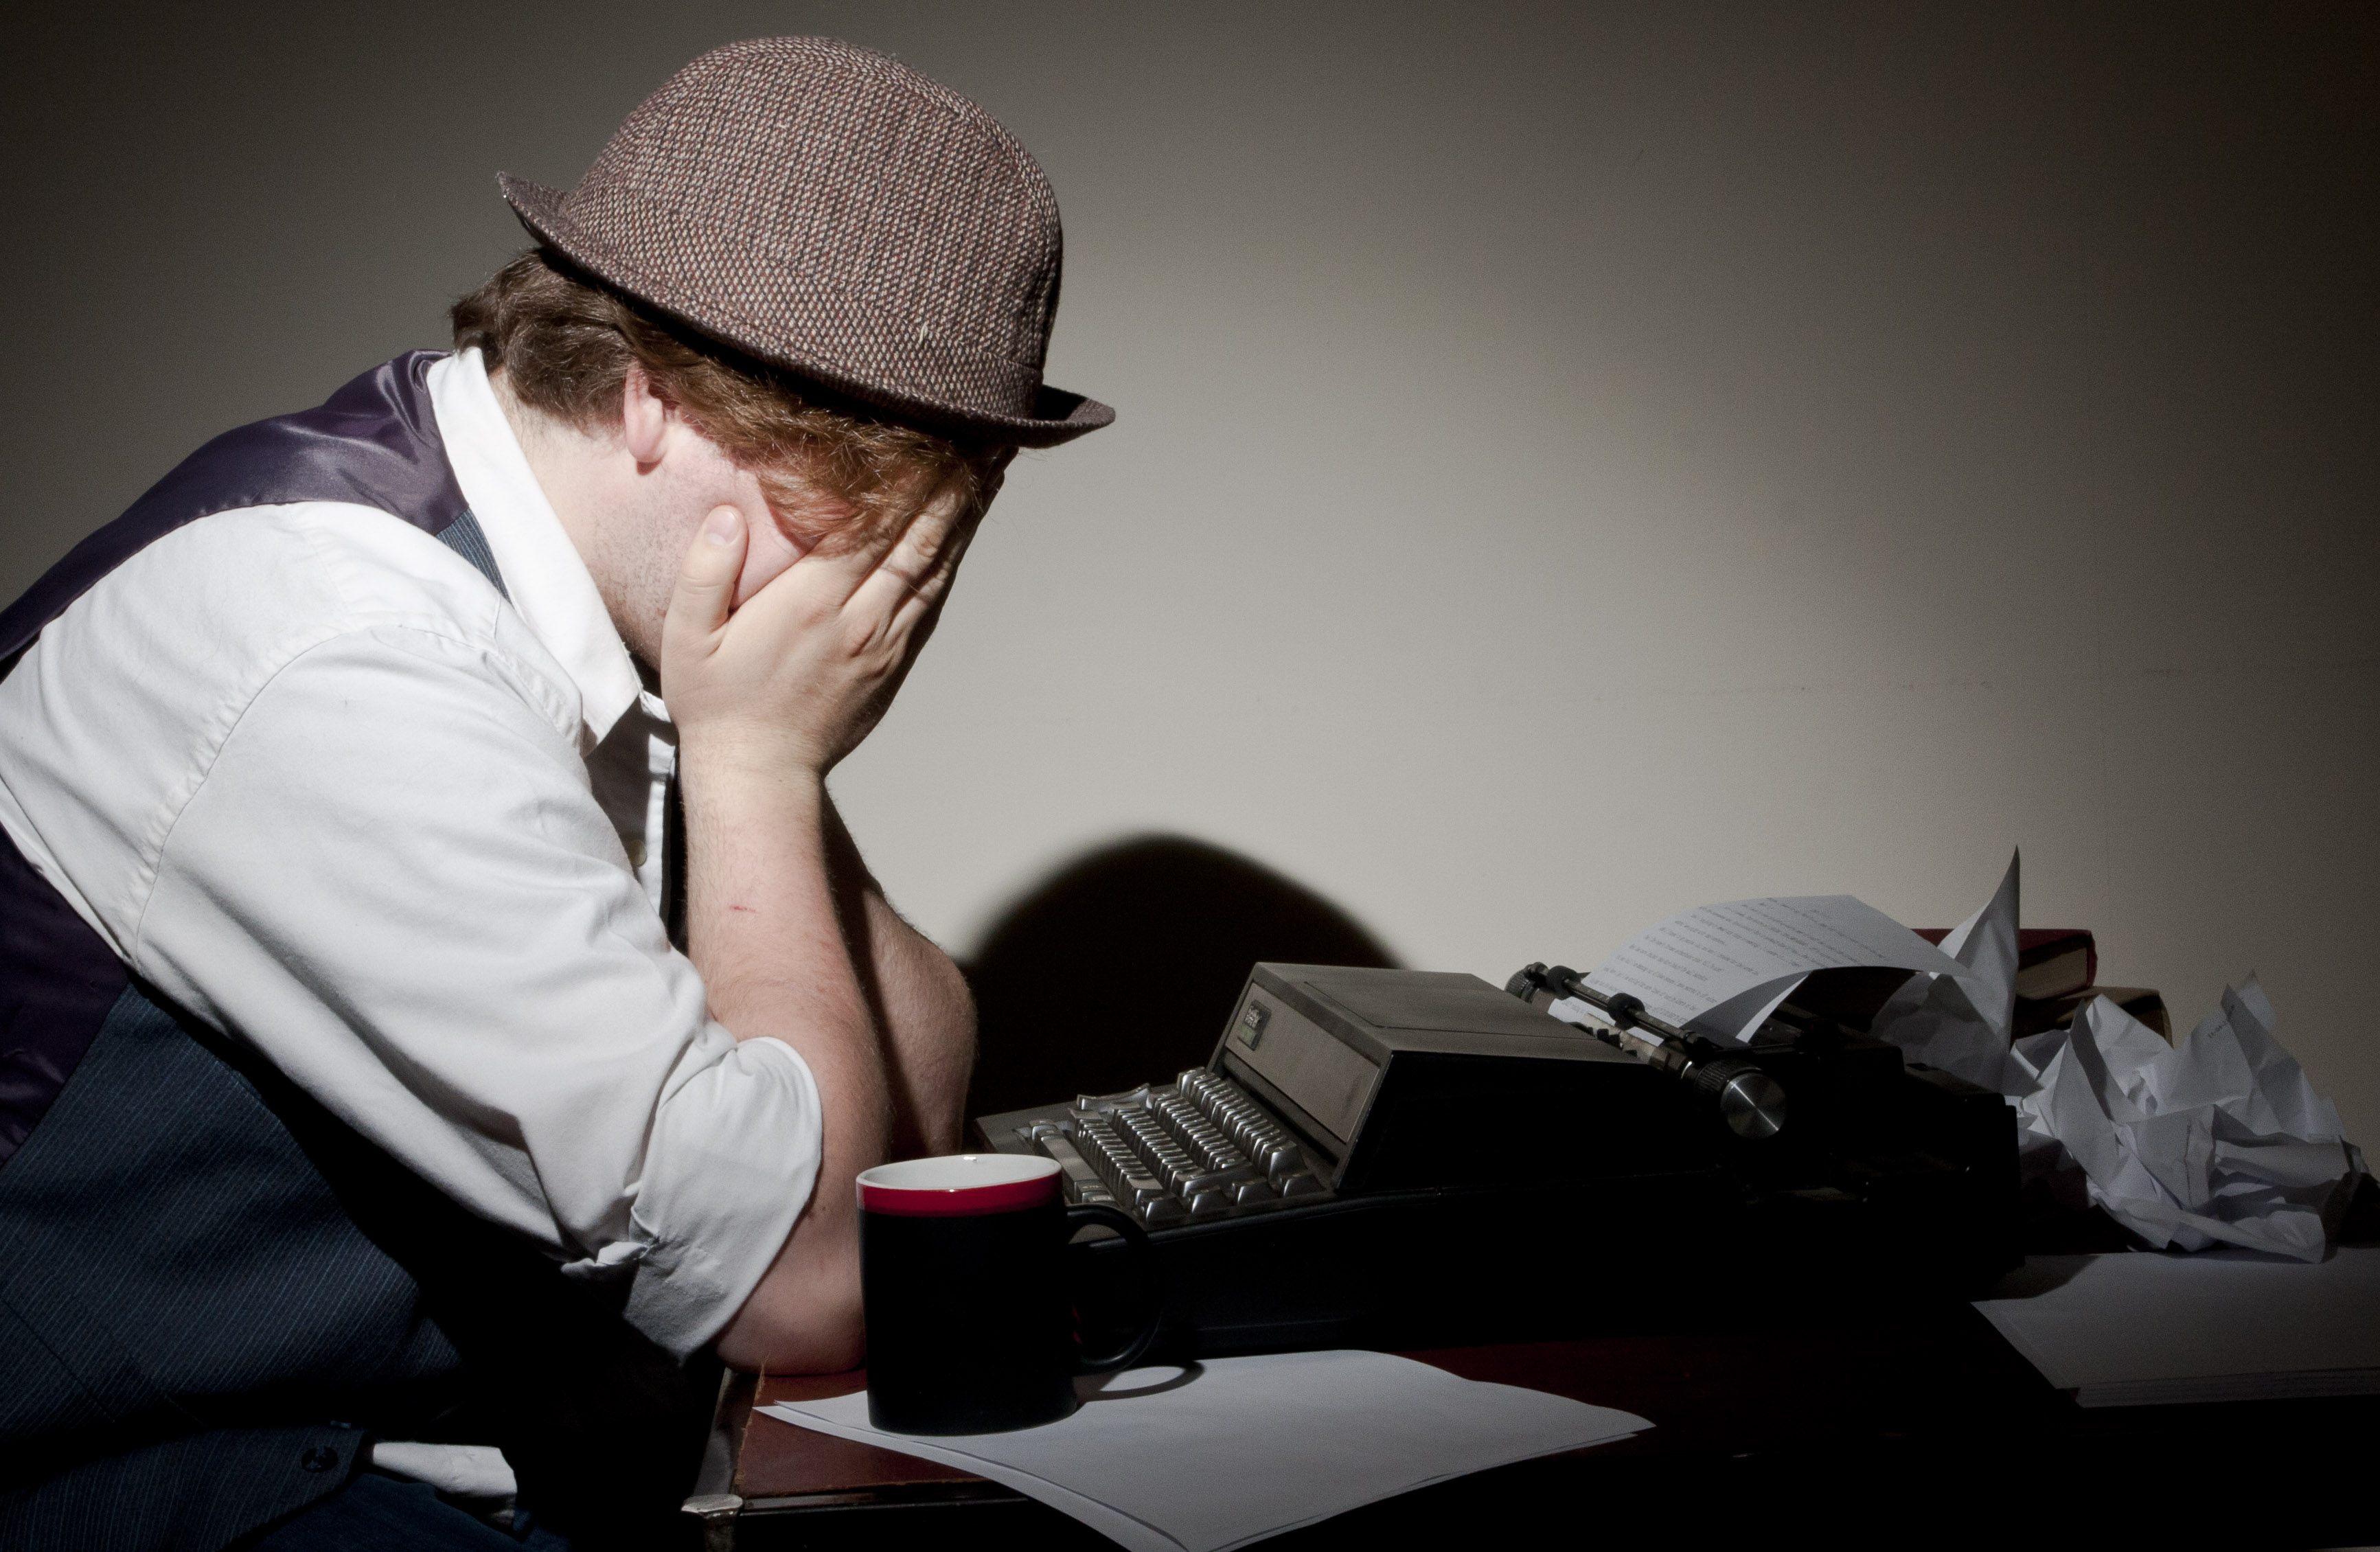 frustrated_writer_by_photonerd88-d3gobx6.jpg